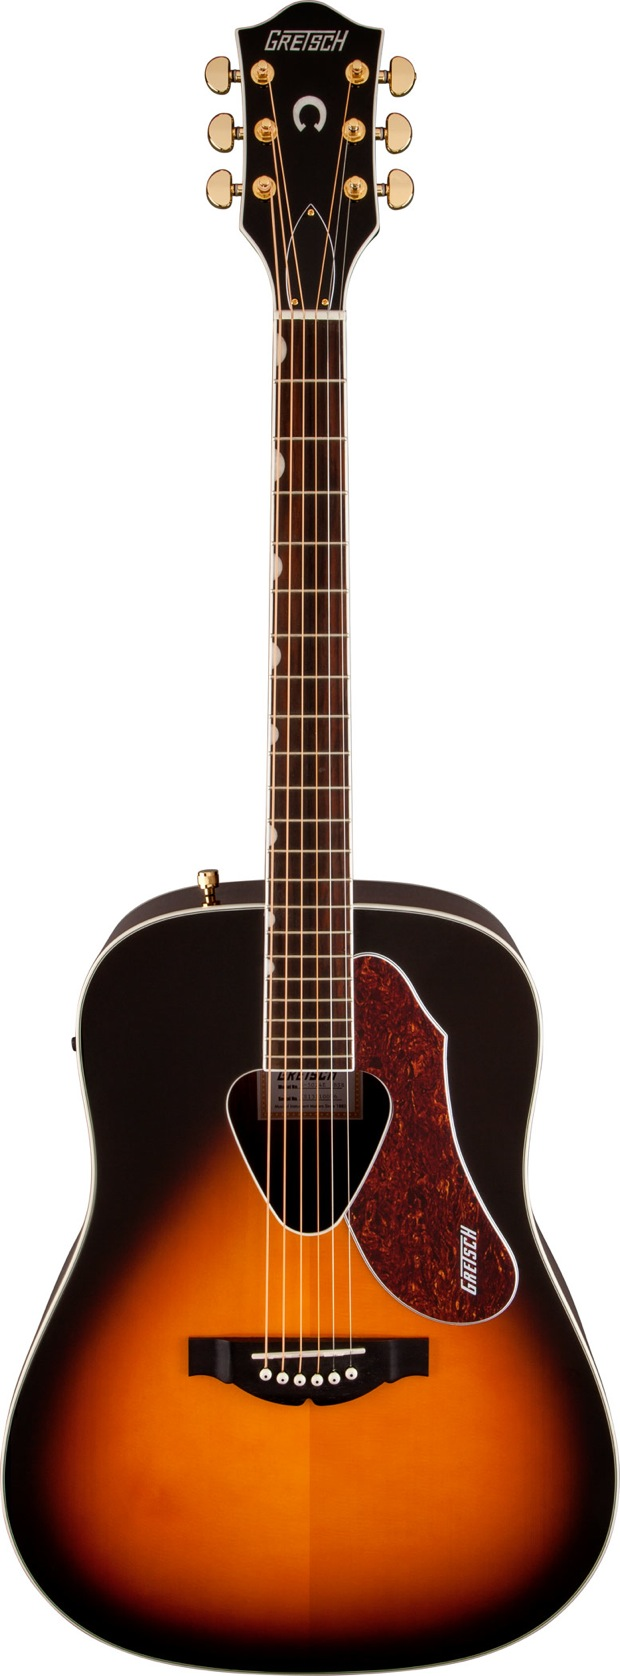 Gretsch Rancher G5024E Rancher Dreadnought